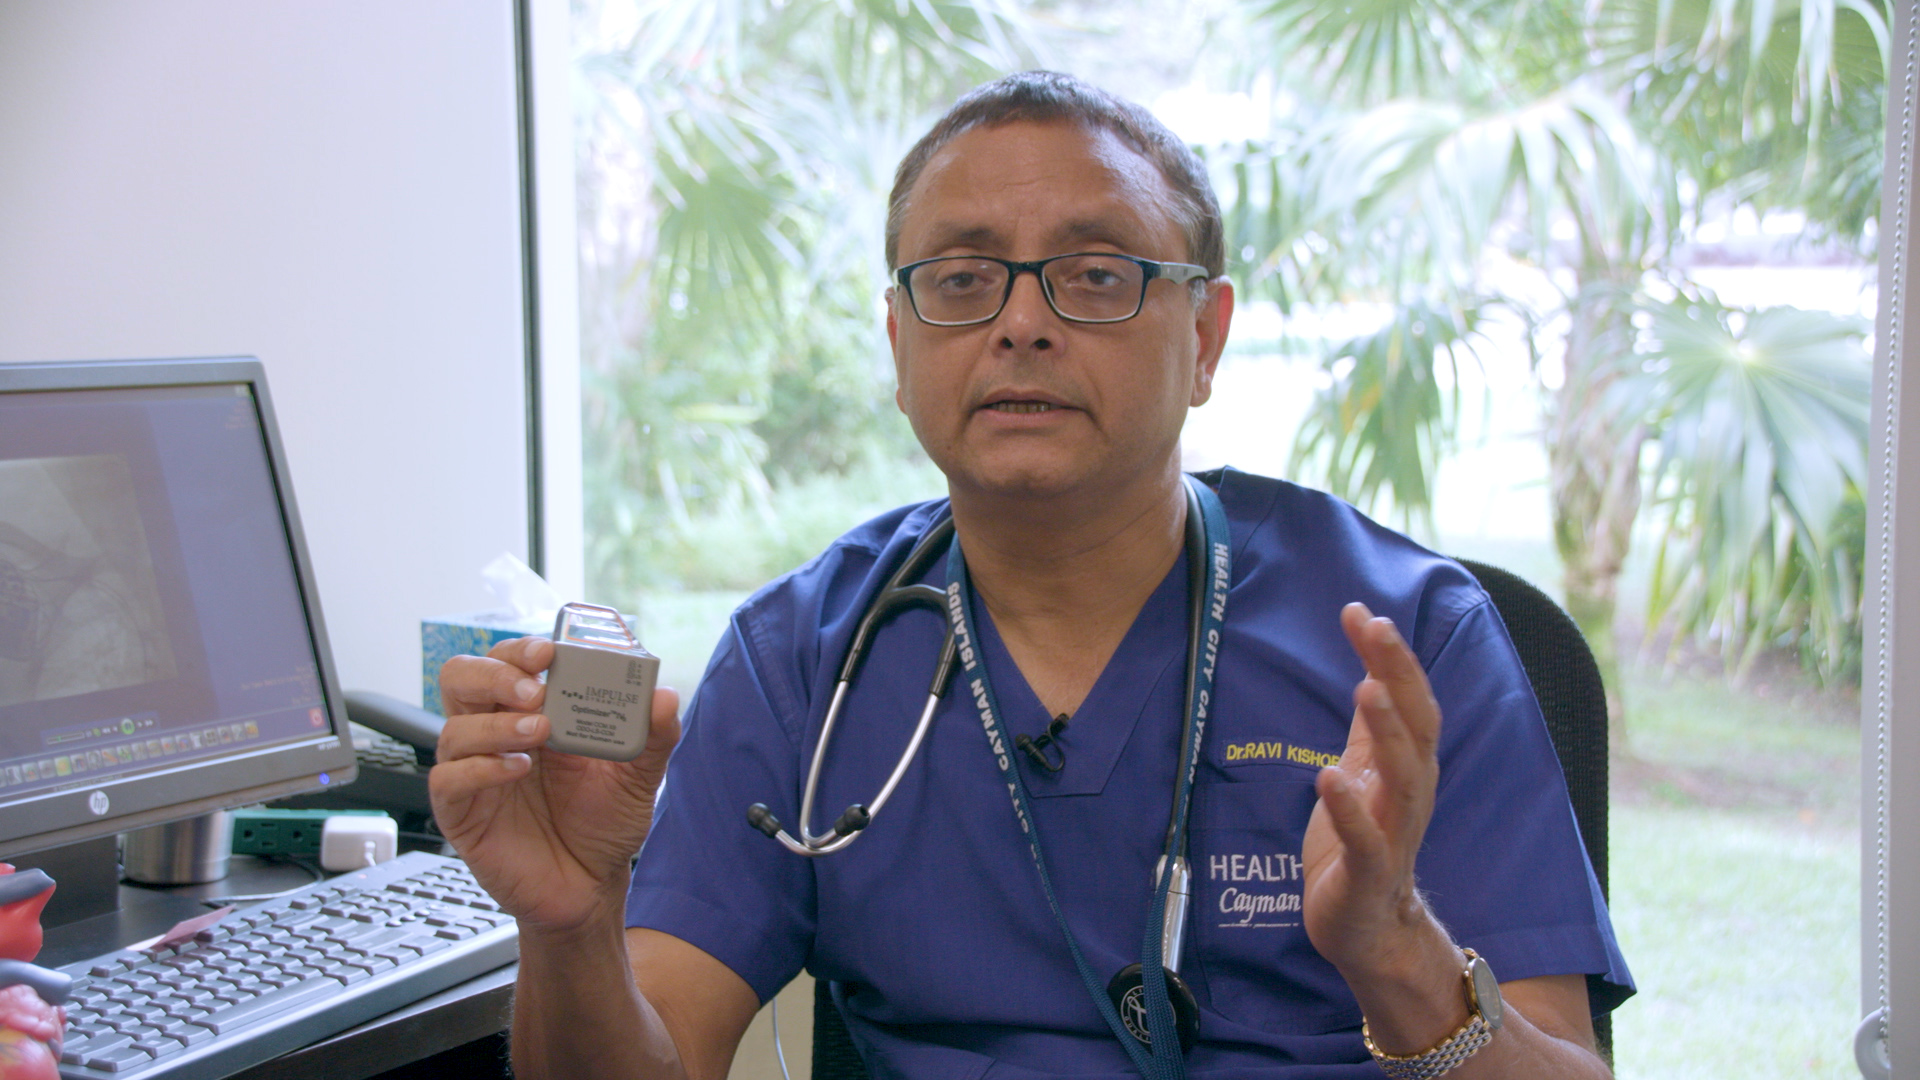 Dr. Ravi Kishore, Chief Interventional Cardiologist and Electrophysiologist at Health City Cayman Islands, has made medical history with the first implantation of a CCM device in the Caribbean, Central and South America.